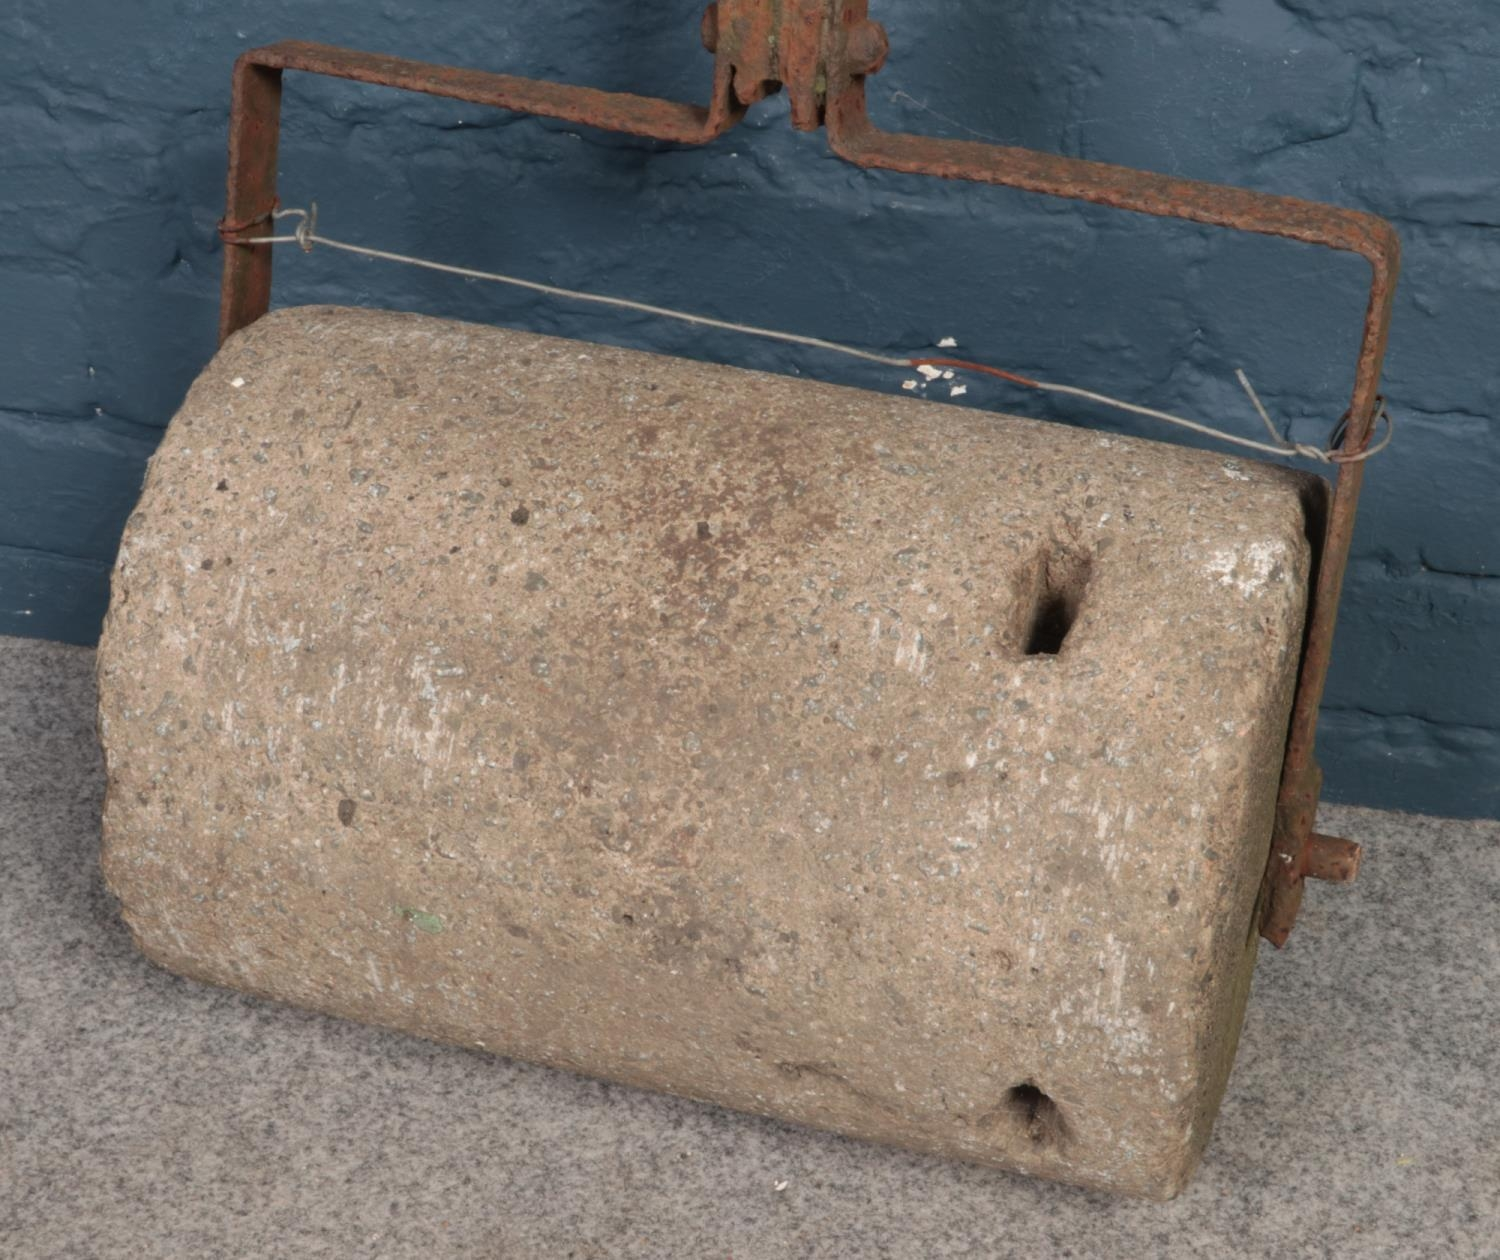 A vintage cast iron and heavy concreate garden roller. H: 140cm, W:44.5cm. Condition age worn. - Image 2 of 2